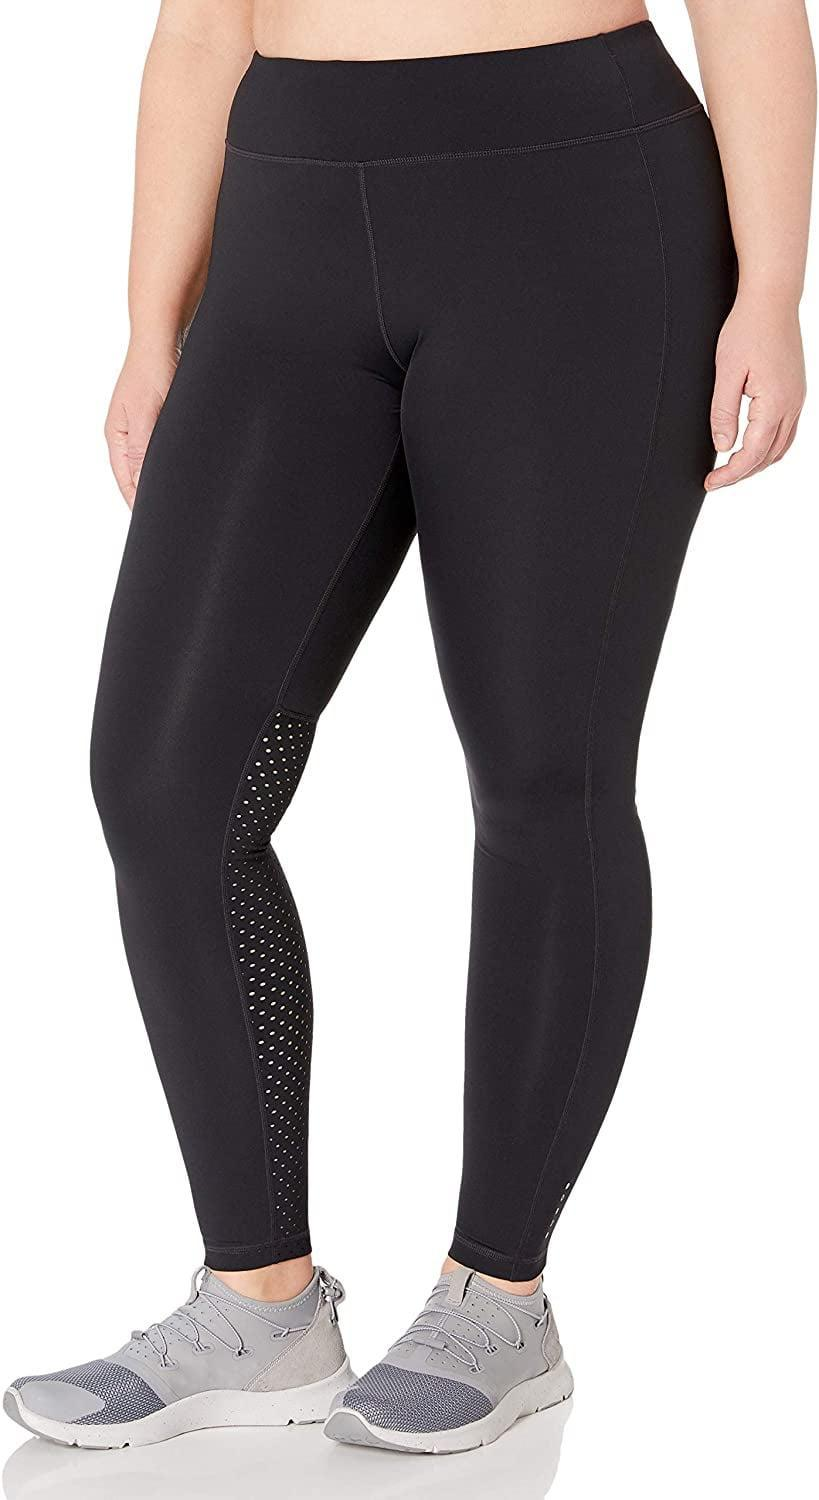 <p>These comfy <span>Core 10 Build Your Own Flashflex Run Full-Length Leggings</span> ($25-$66) are available in both a high and medium waist length. </p>